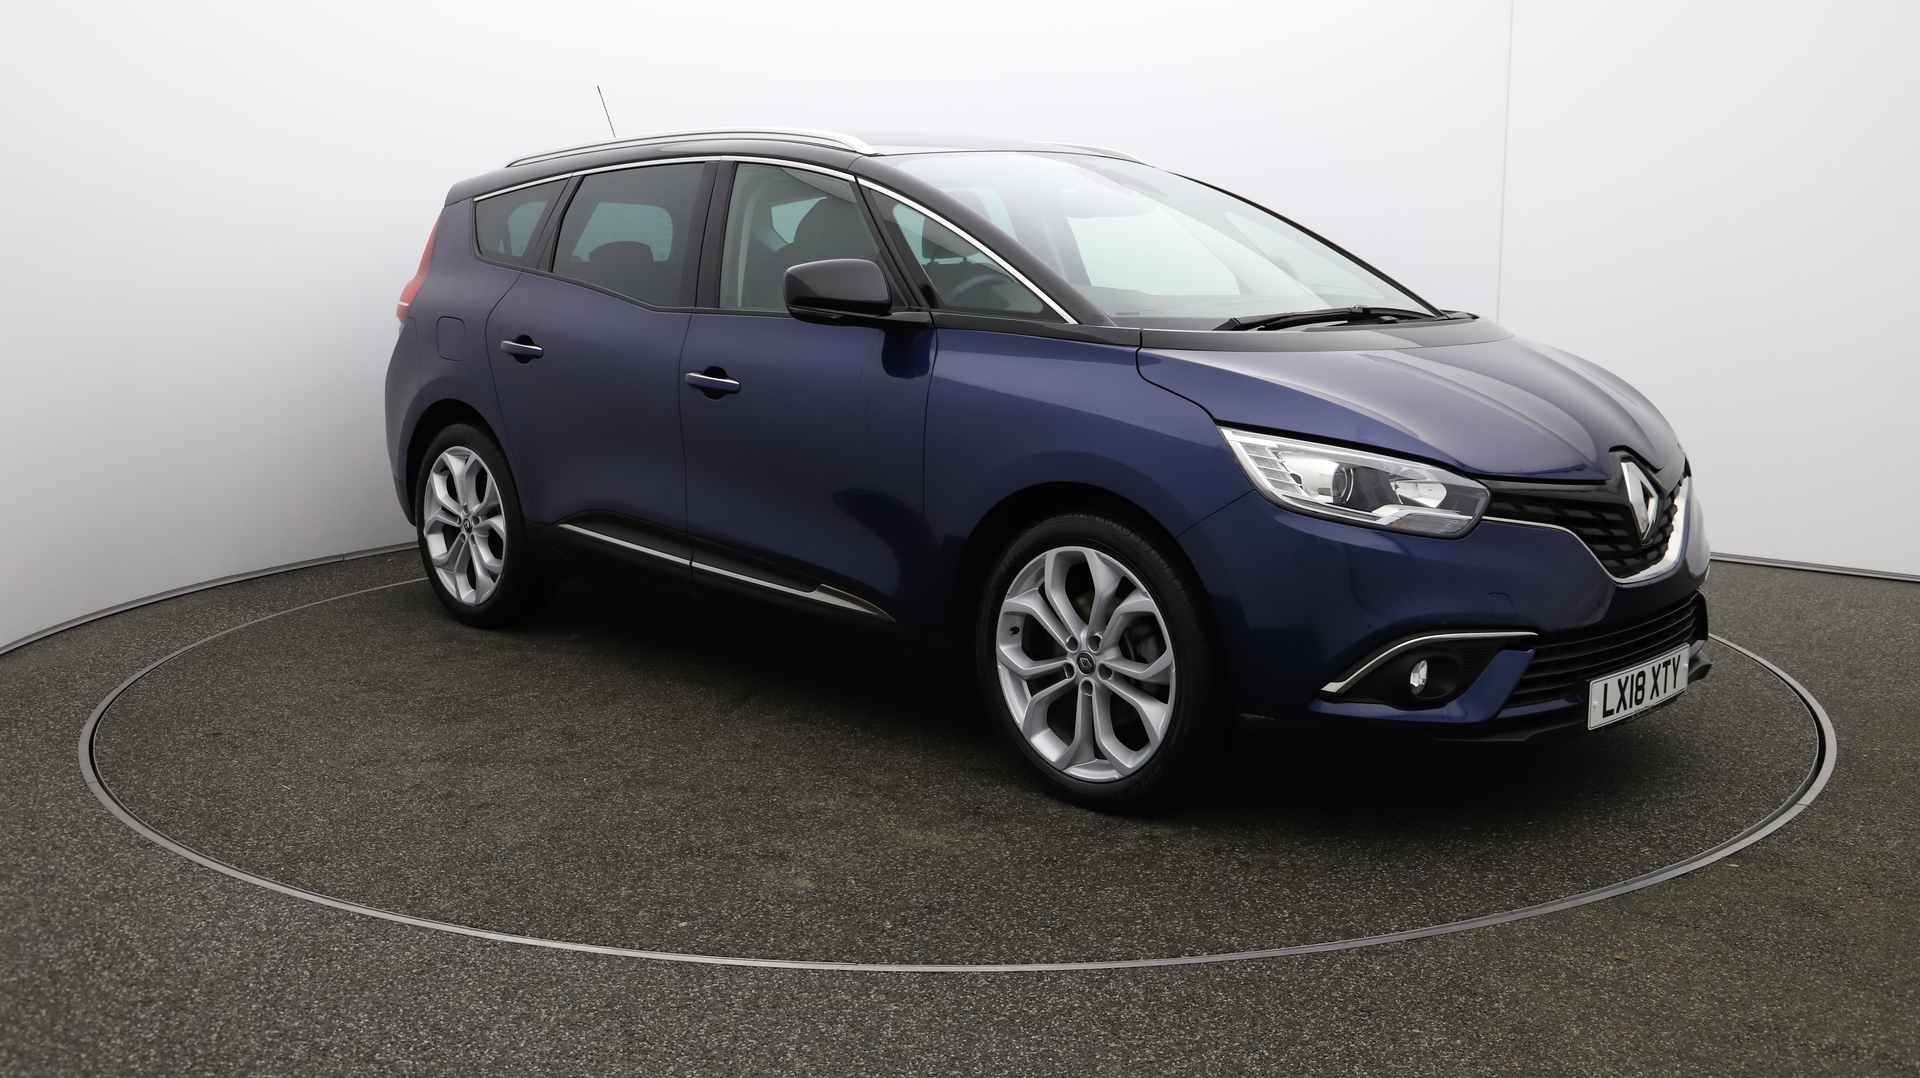 Renault Grand Scenic GRAND DYNAMIQUE NAV DCI Service History